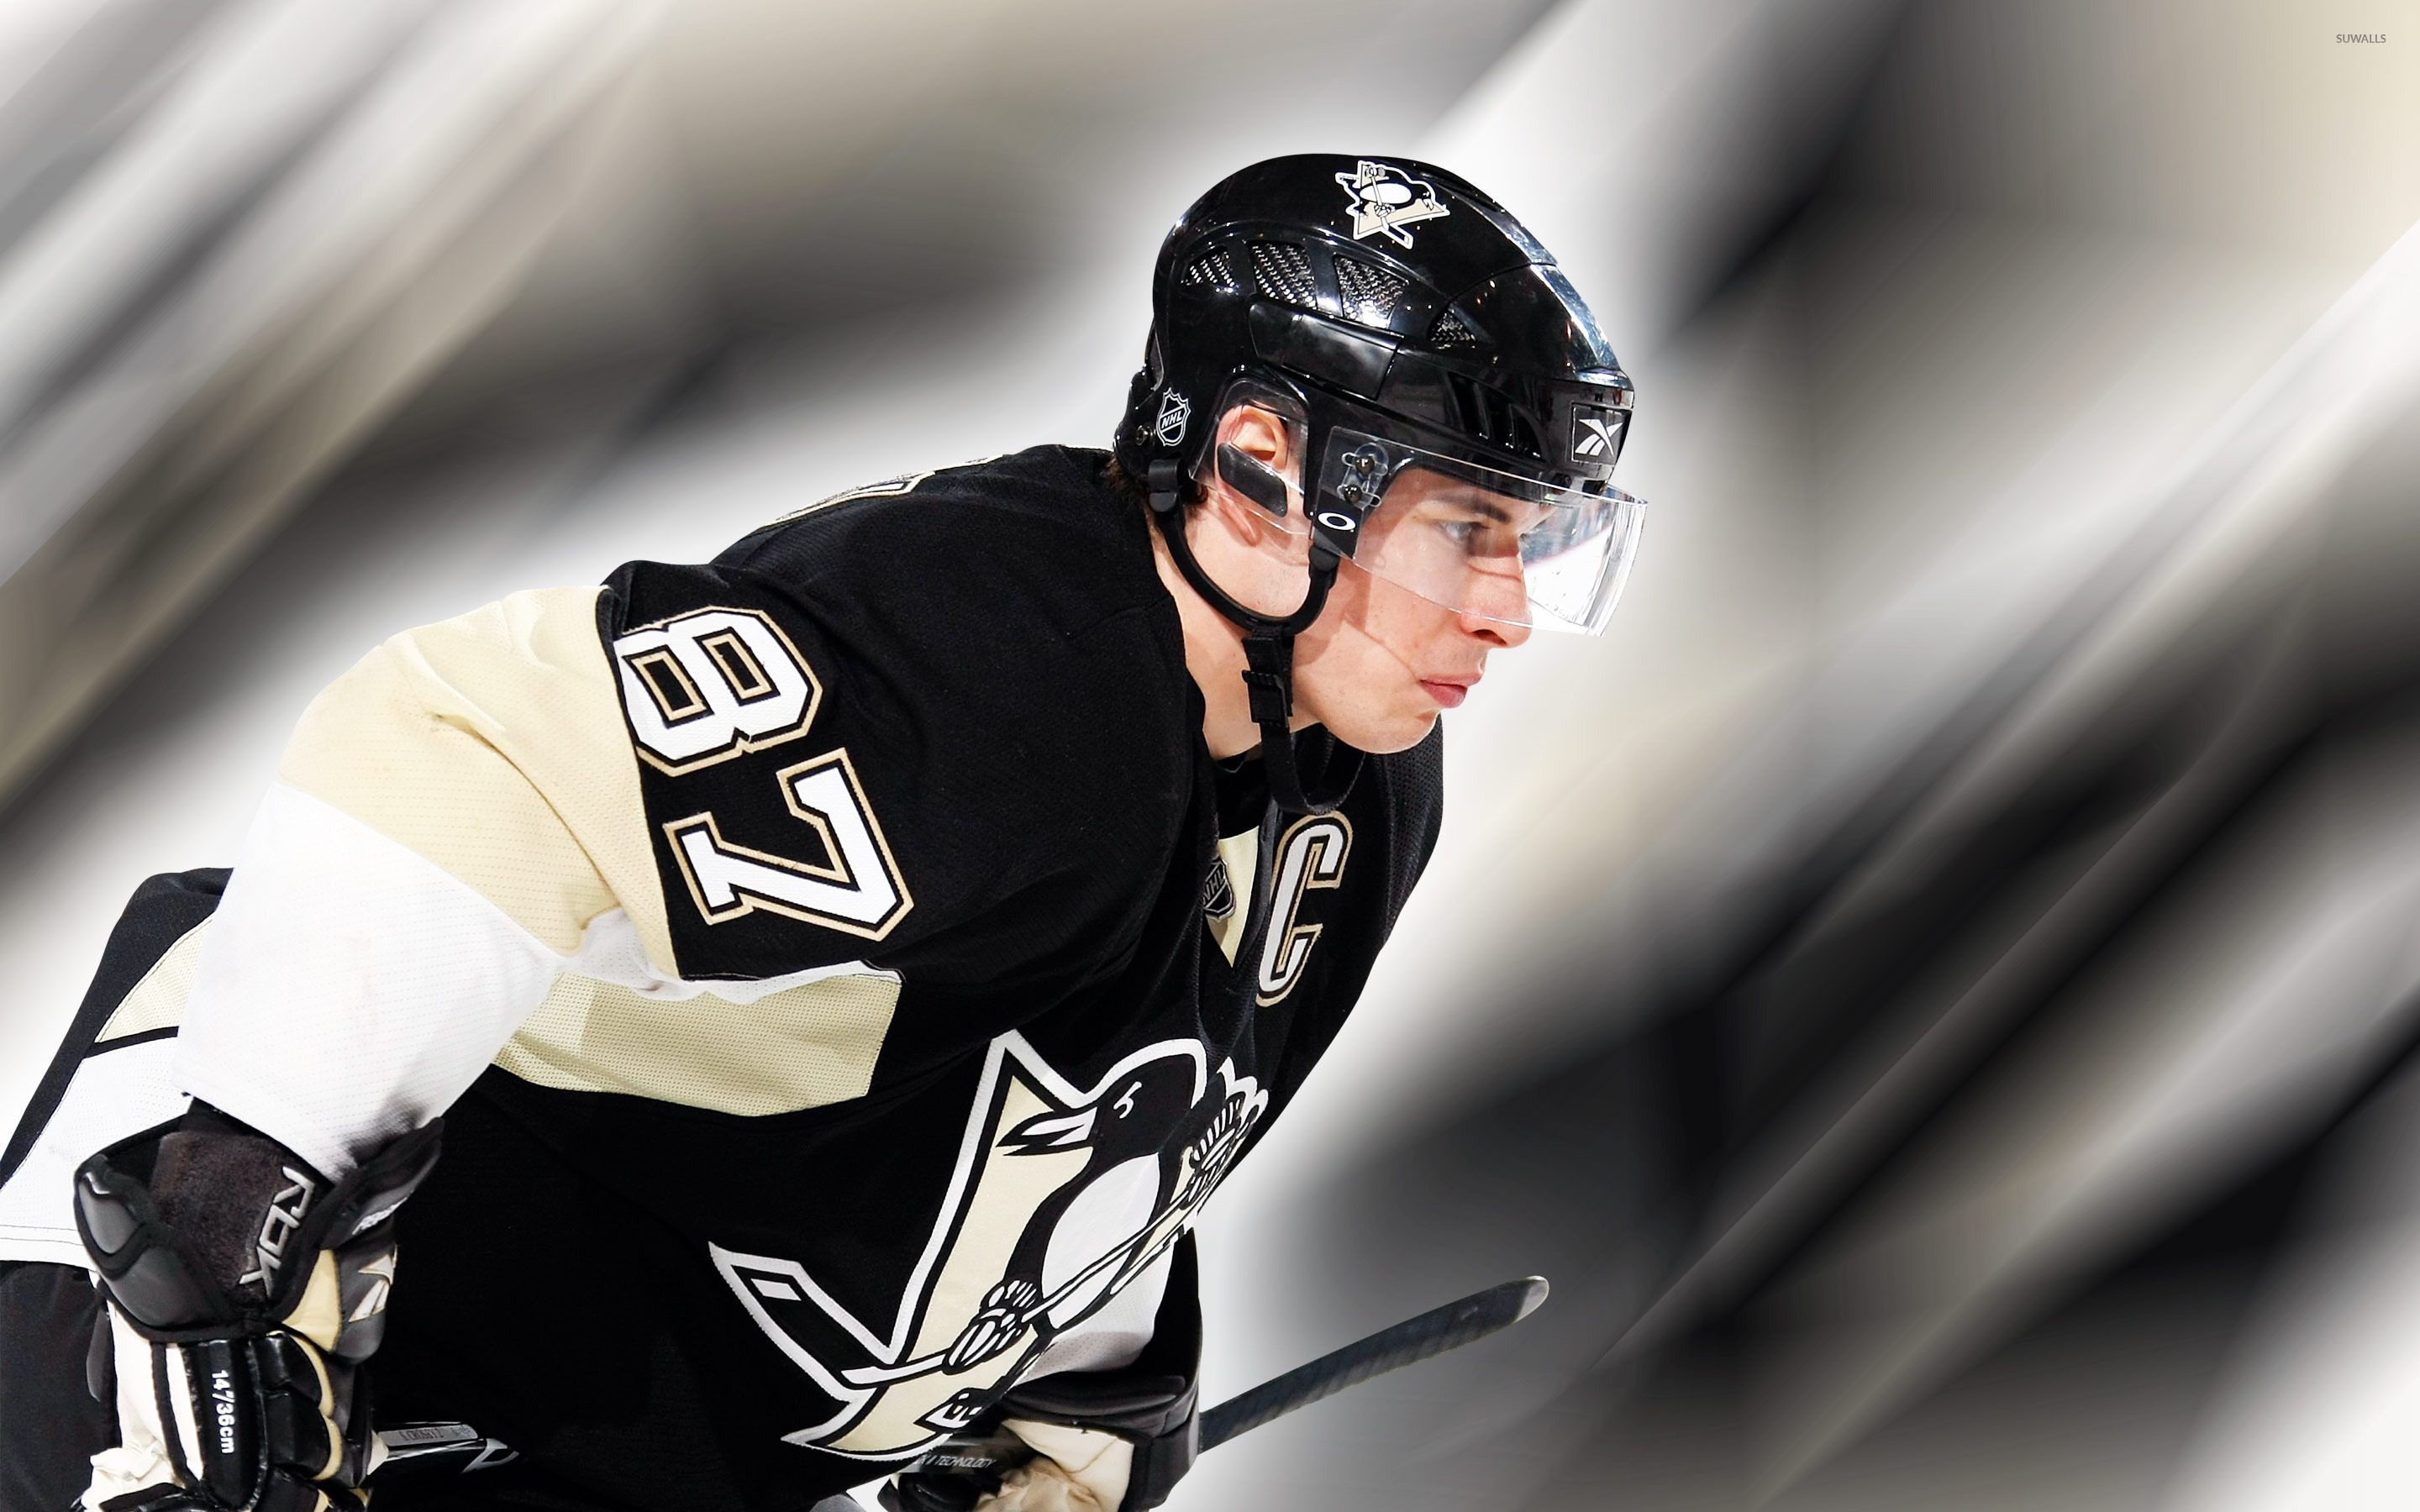 5749b4d22cb Sidney Crosby  3  wallpaper - Sport wallpapers -  19899